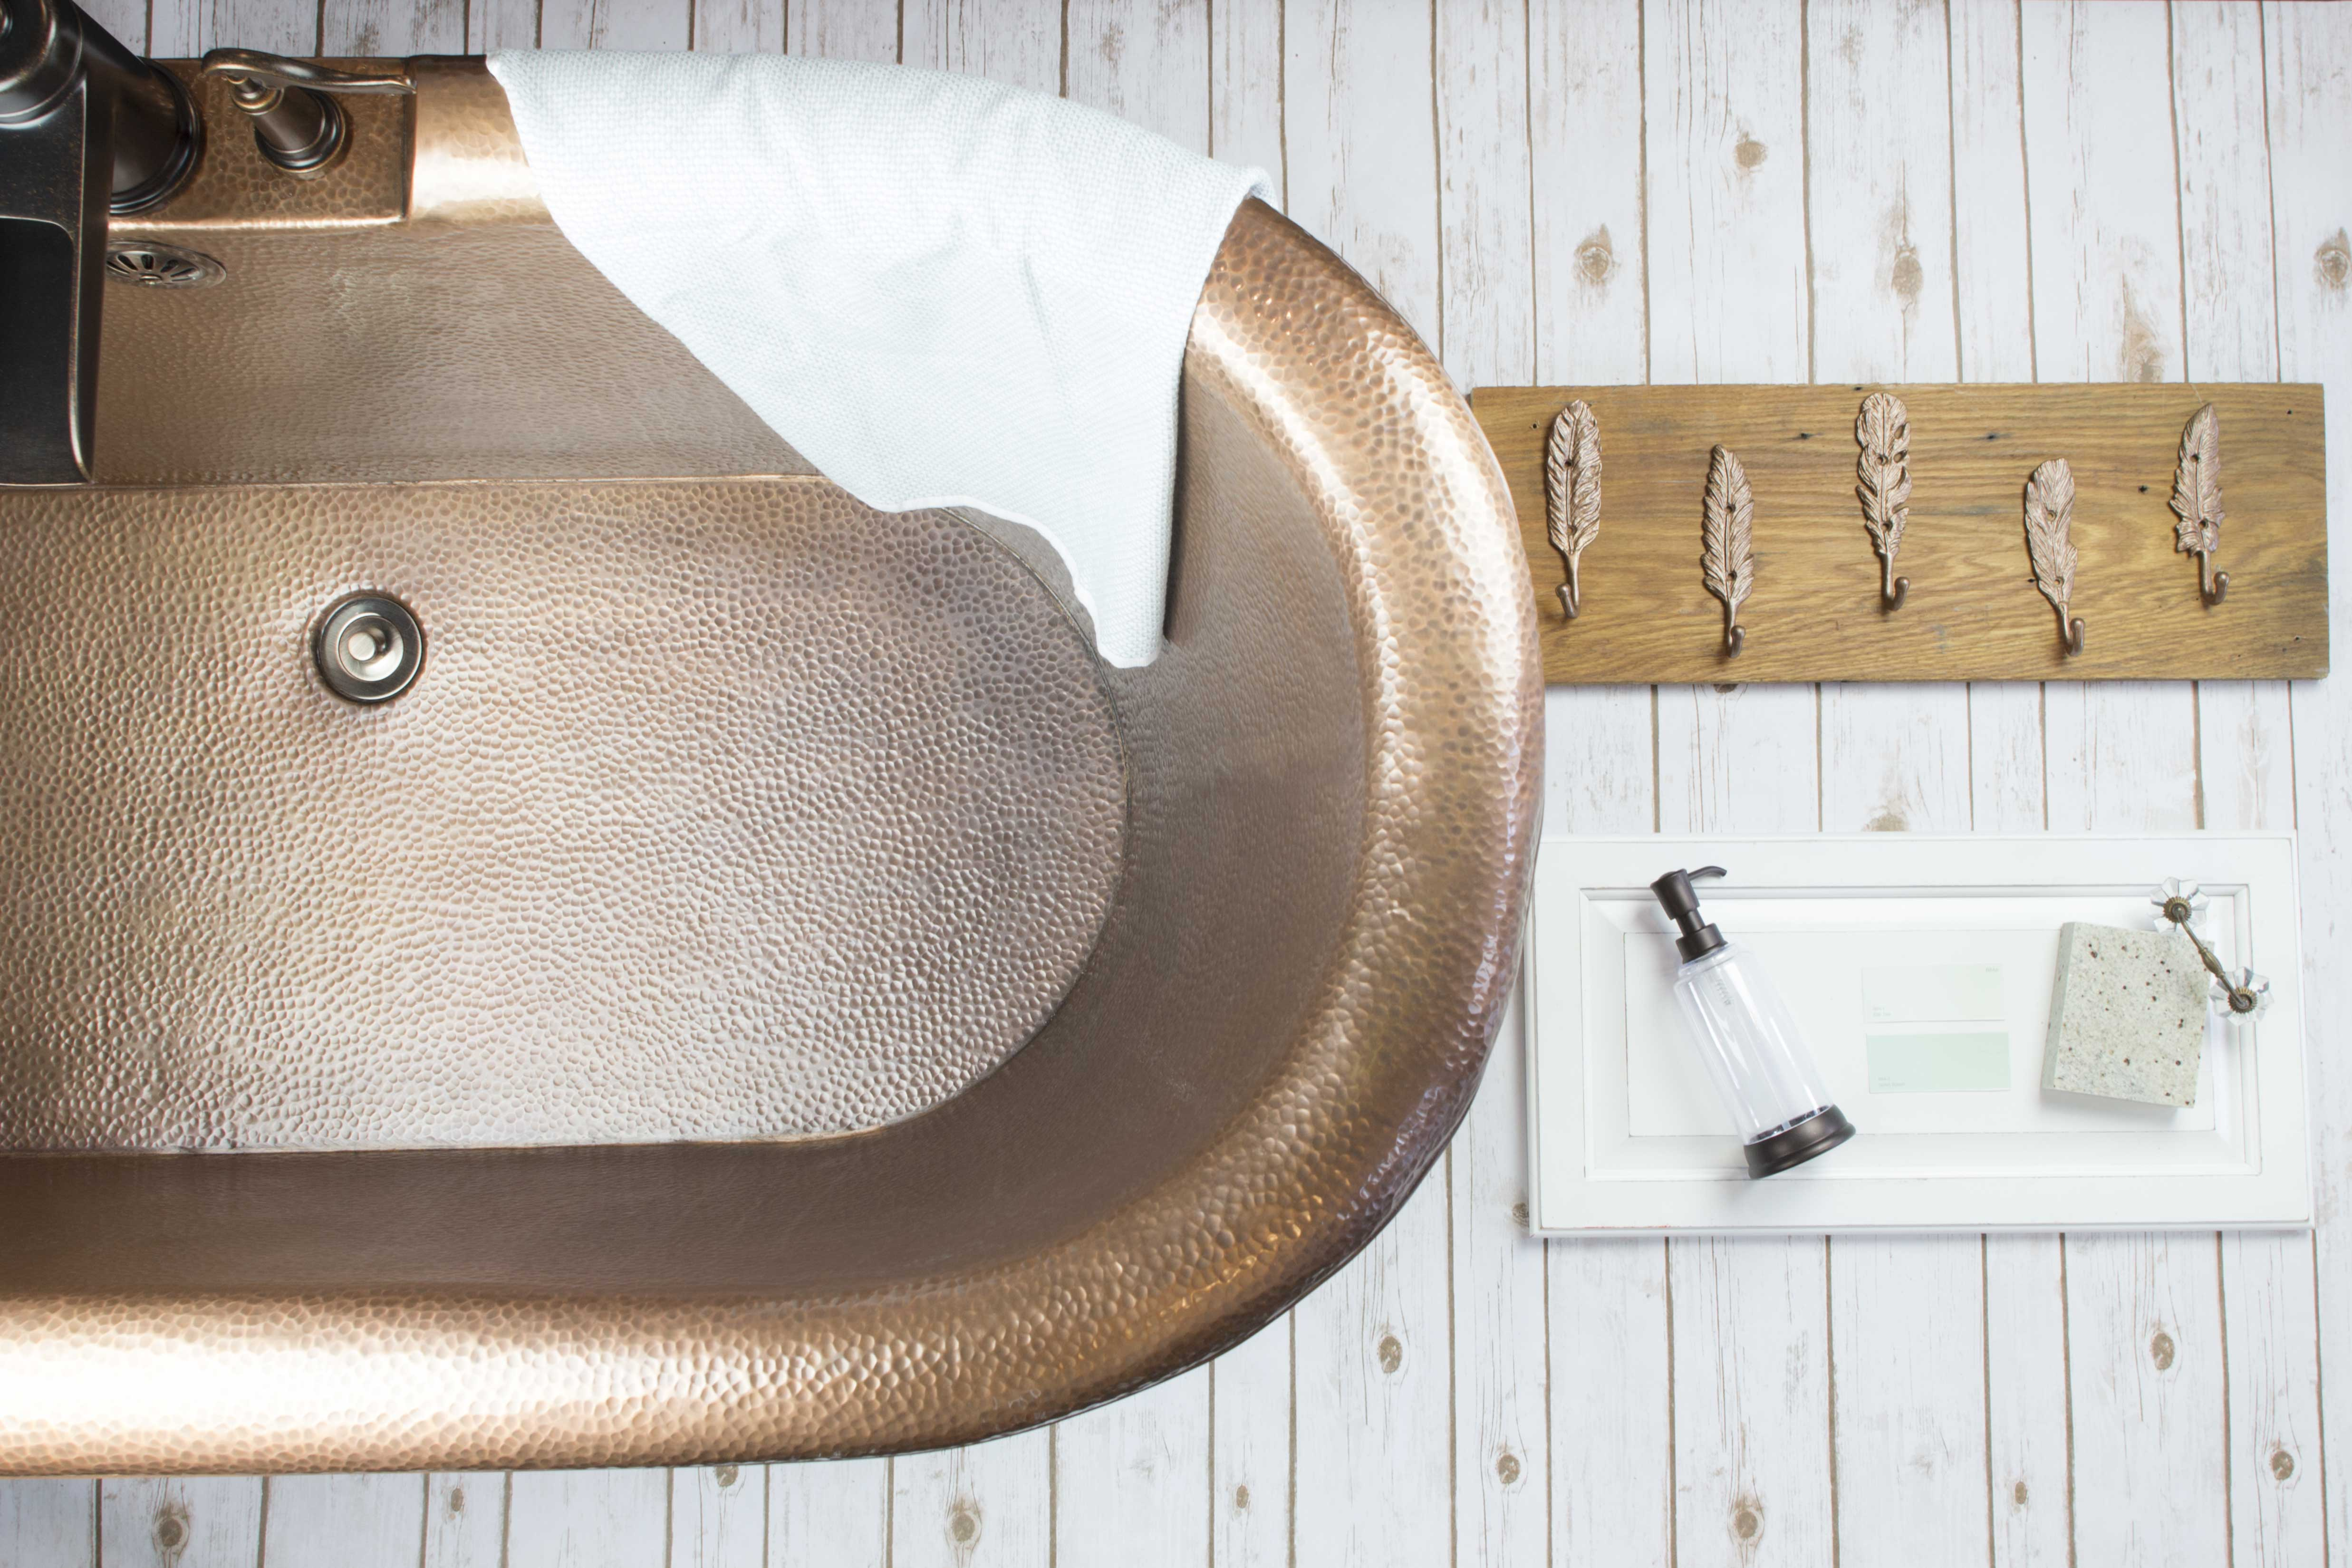 The Thales Copper Bathtub Designing with Copper in Mind Sinkology